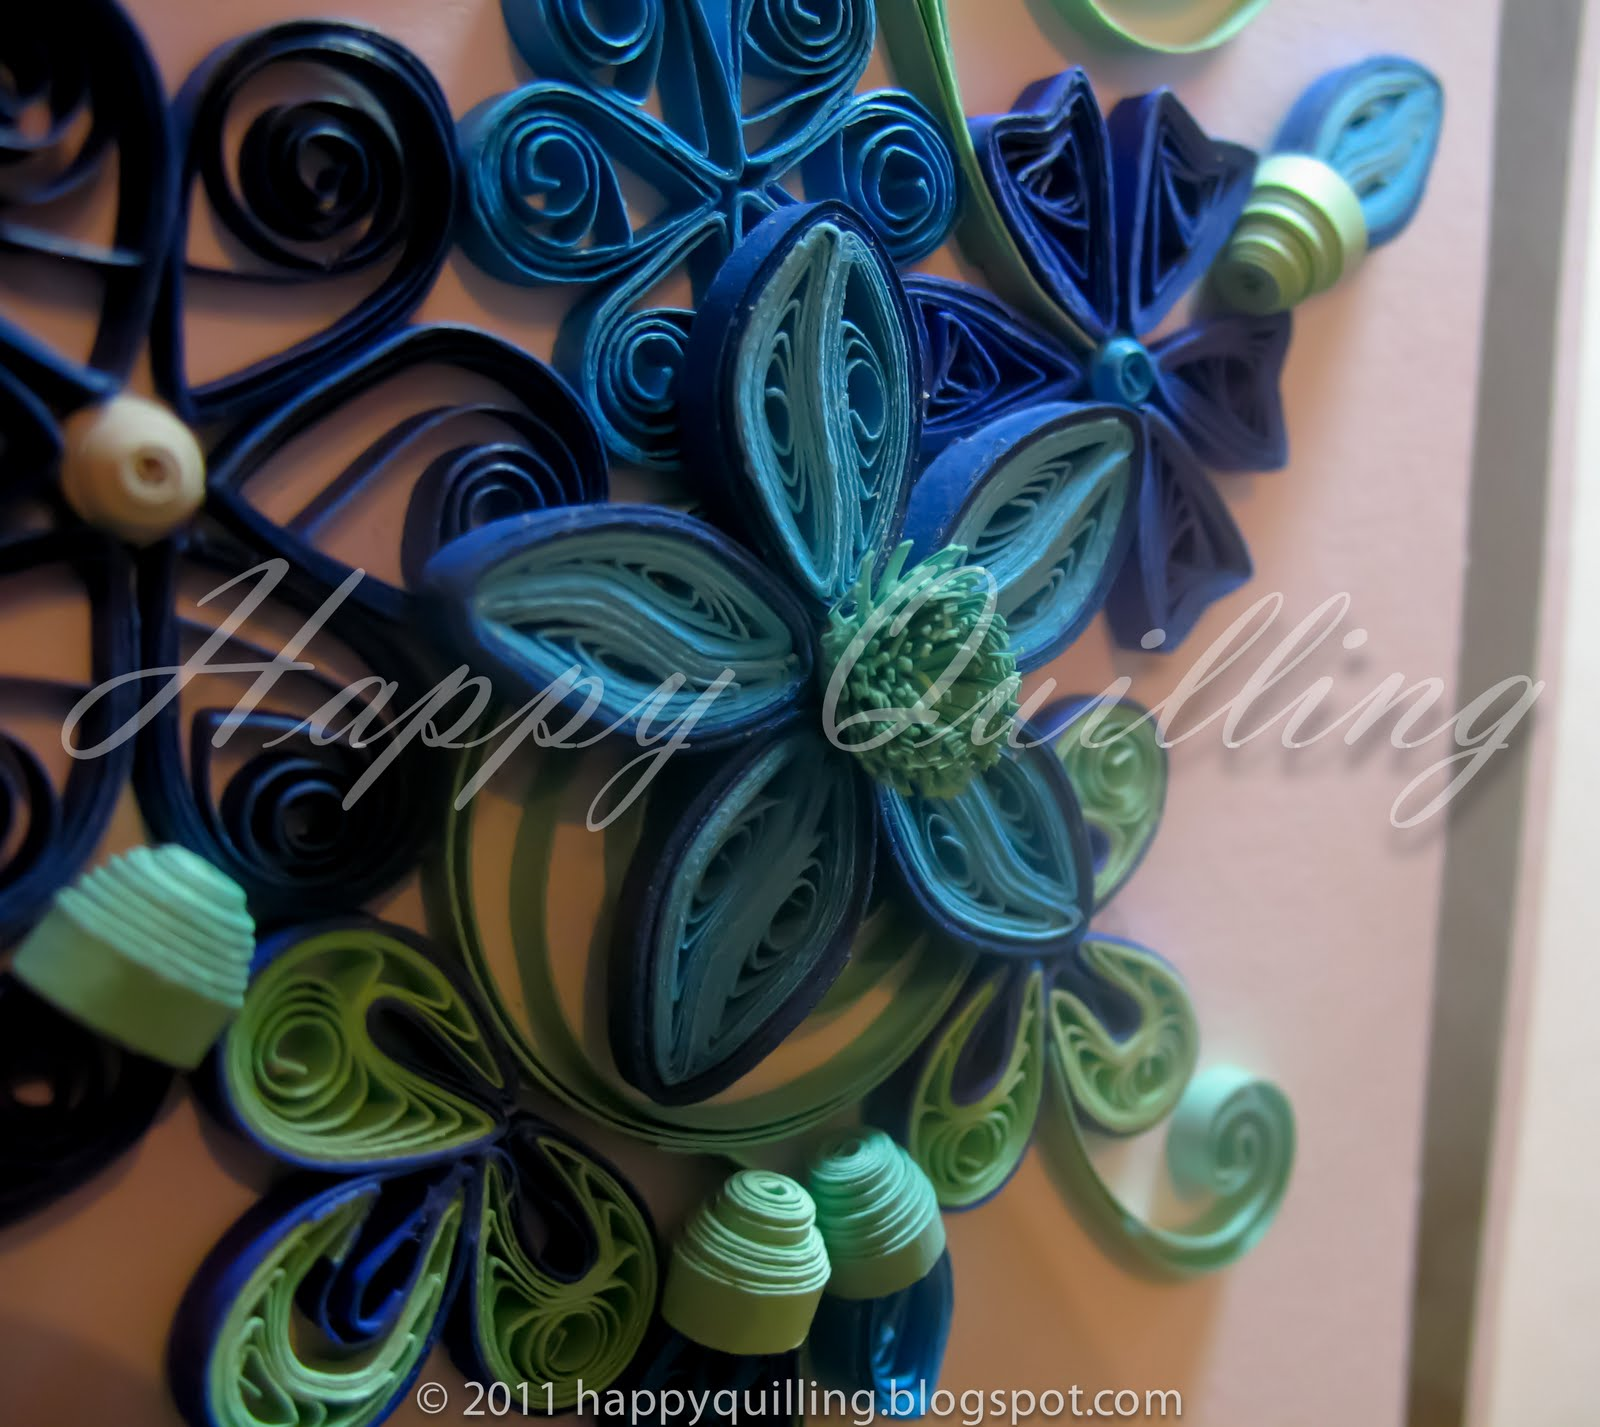 Forum gt welcome gt hello crafters happy quilling joyfilly says hi